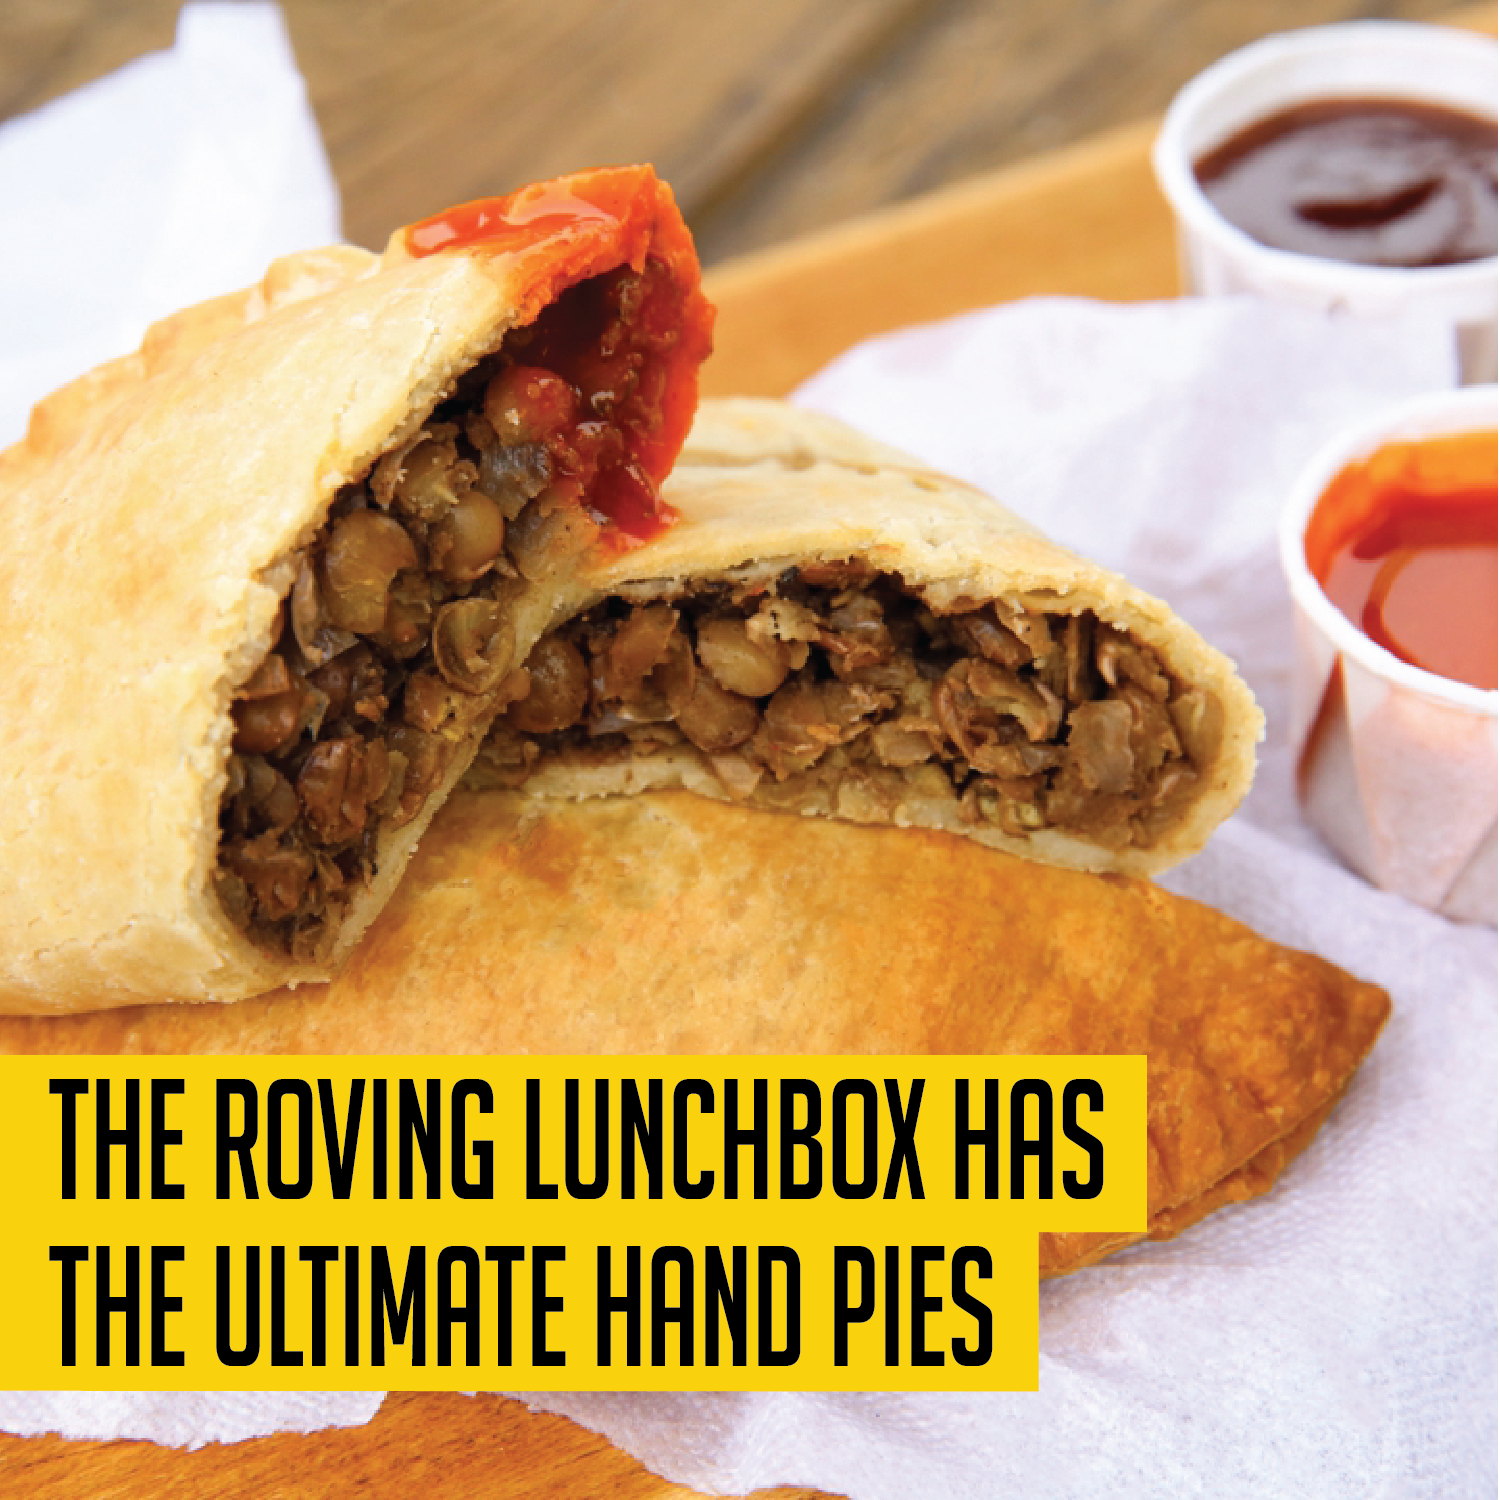 Kriativ_Co_The_Roving_Lunchbox_Boston_HandPies_FoodTruck_MA-03.png